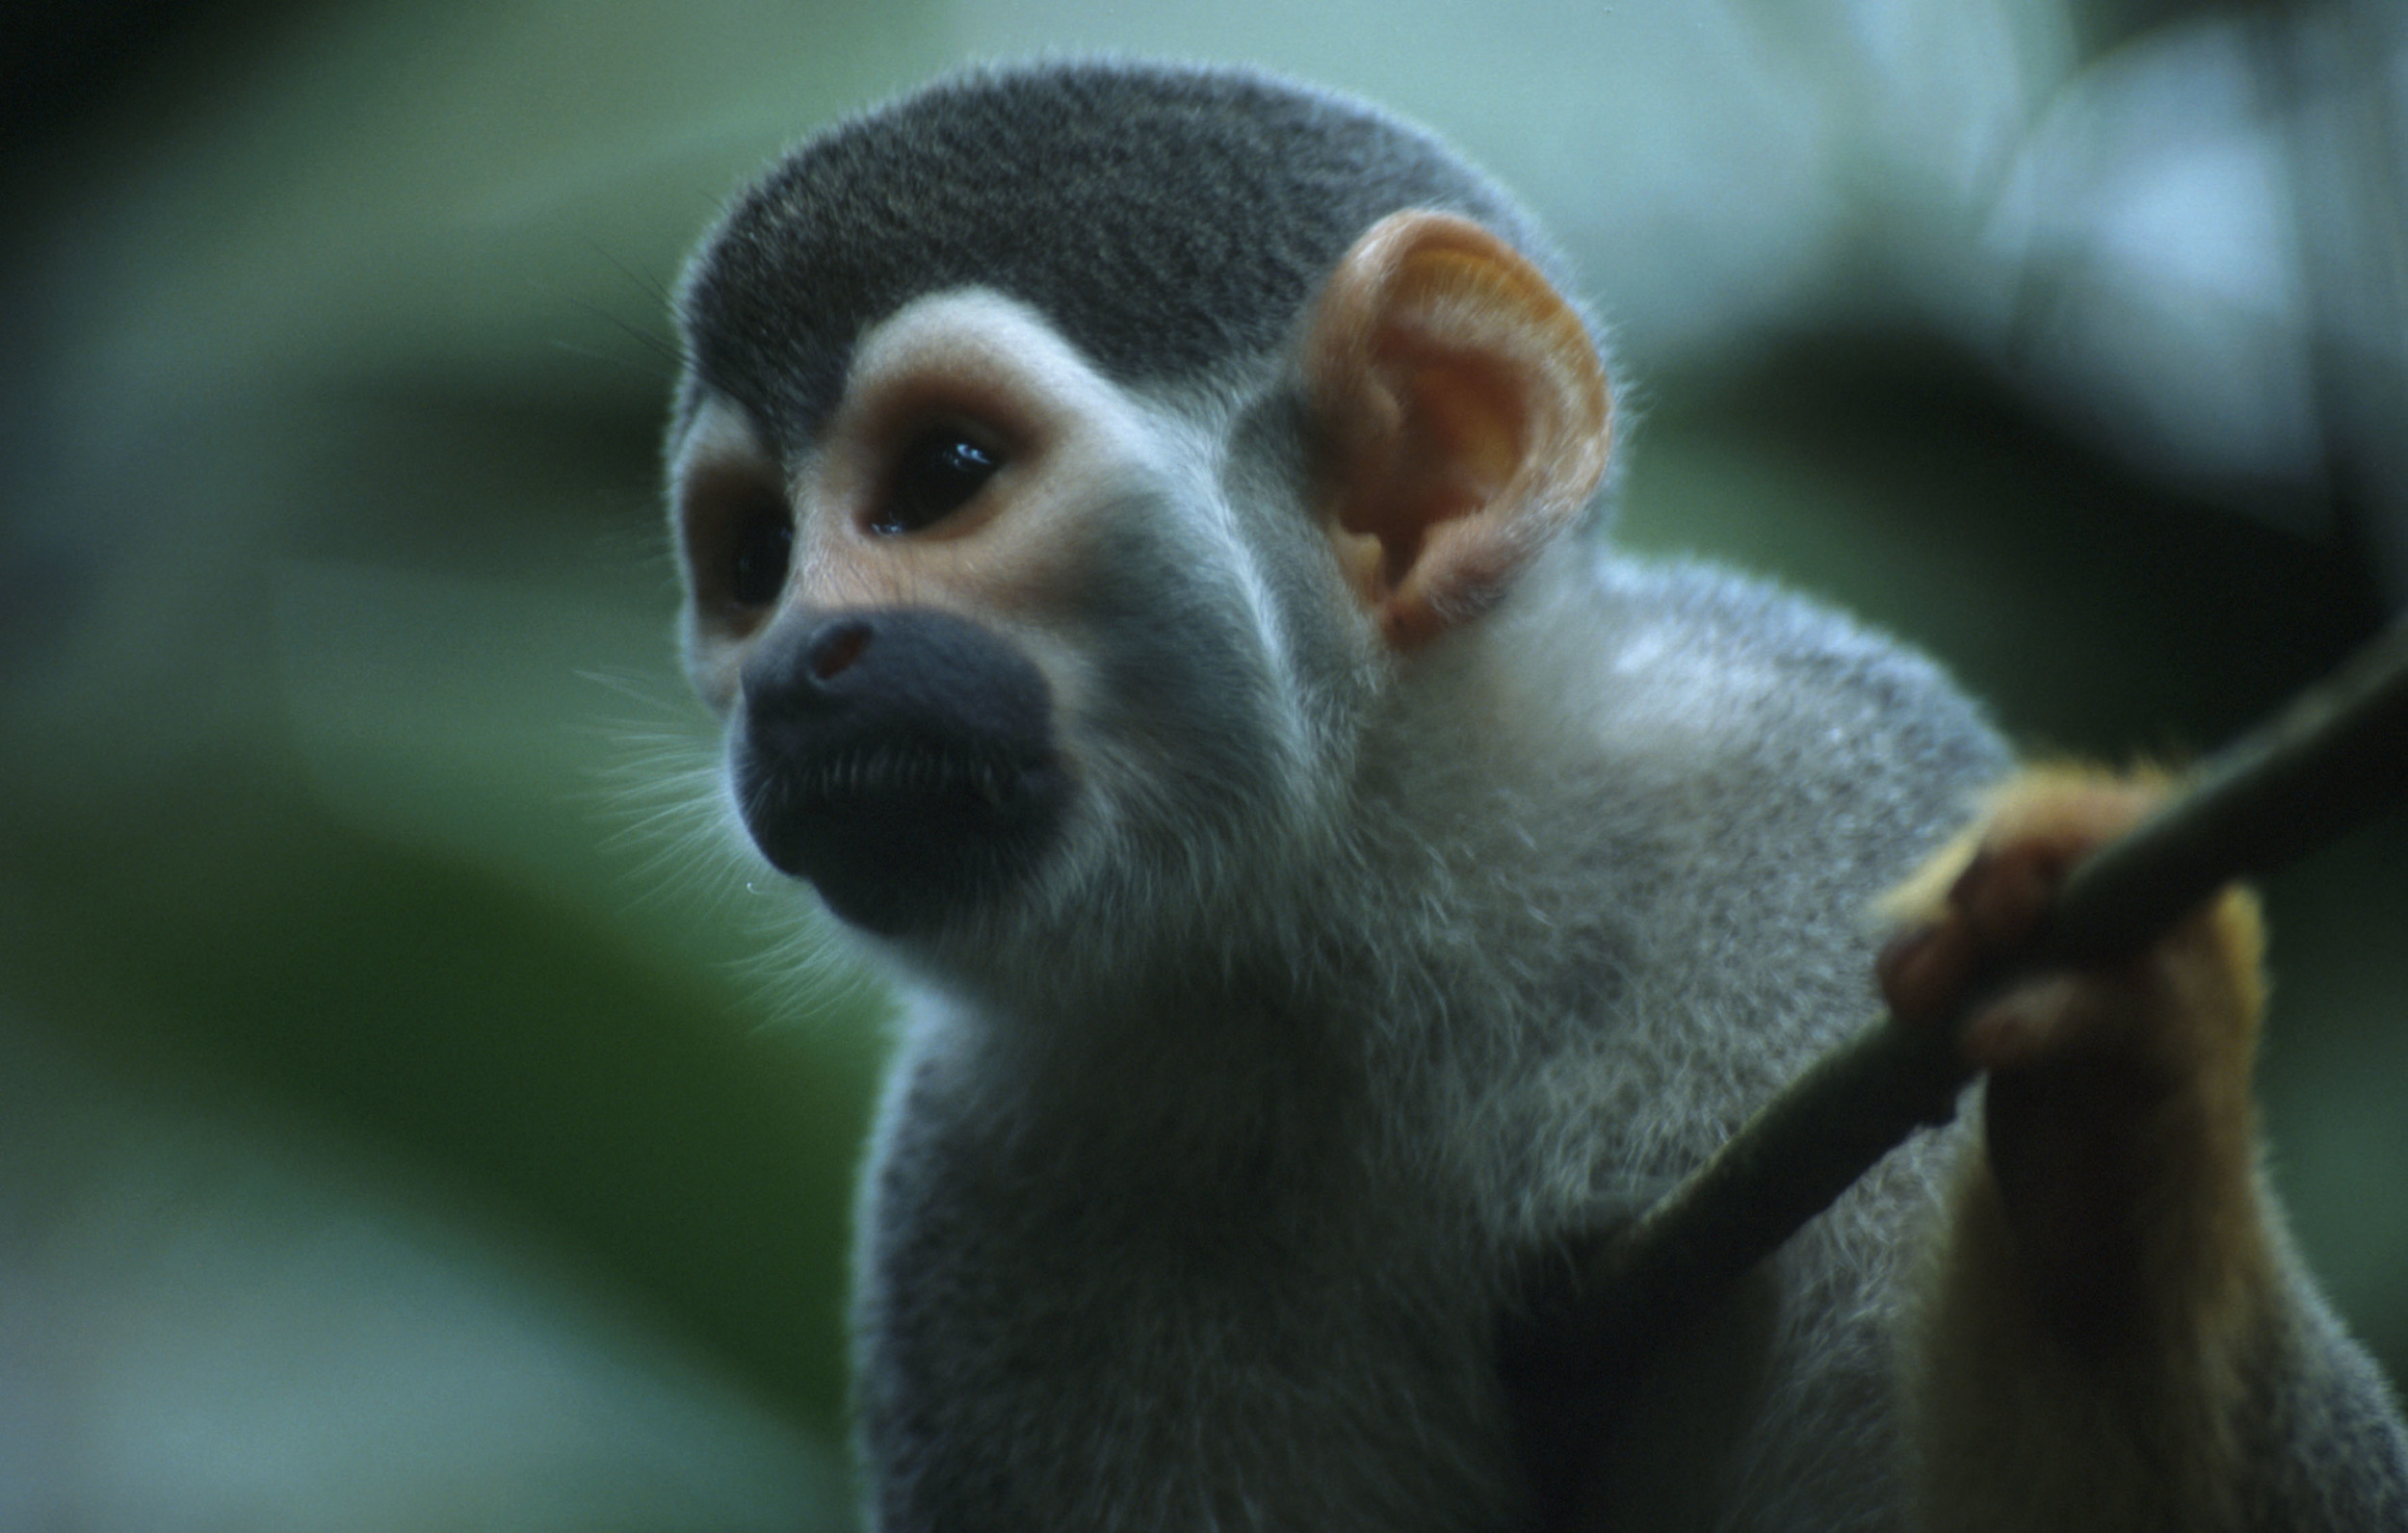 close up of squirrel monkey